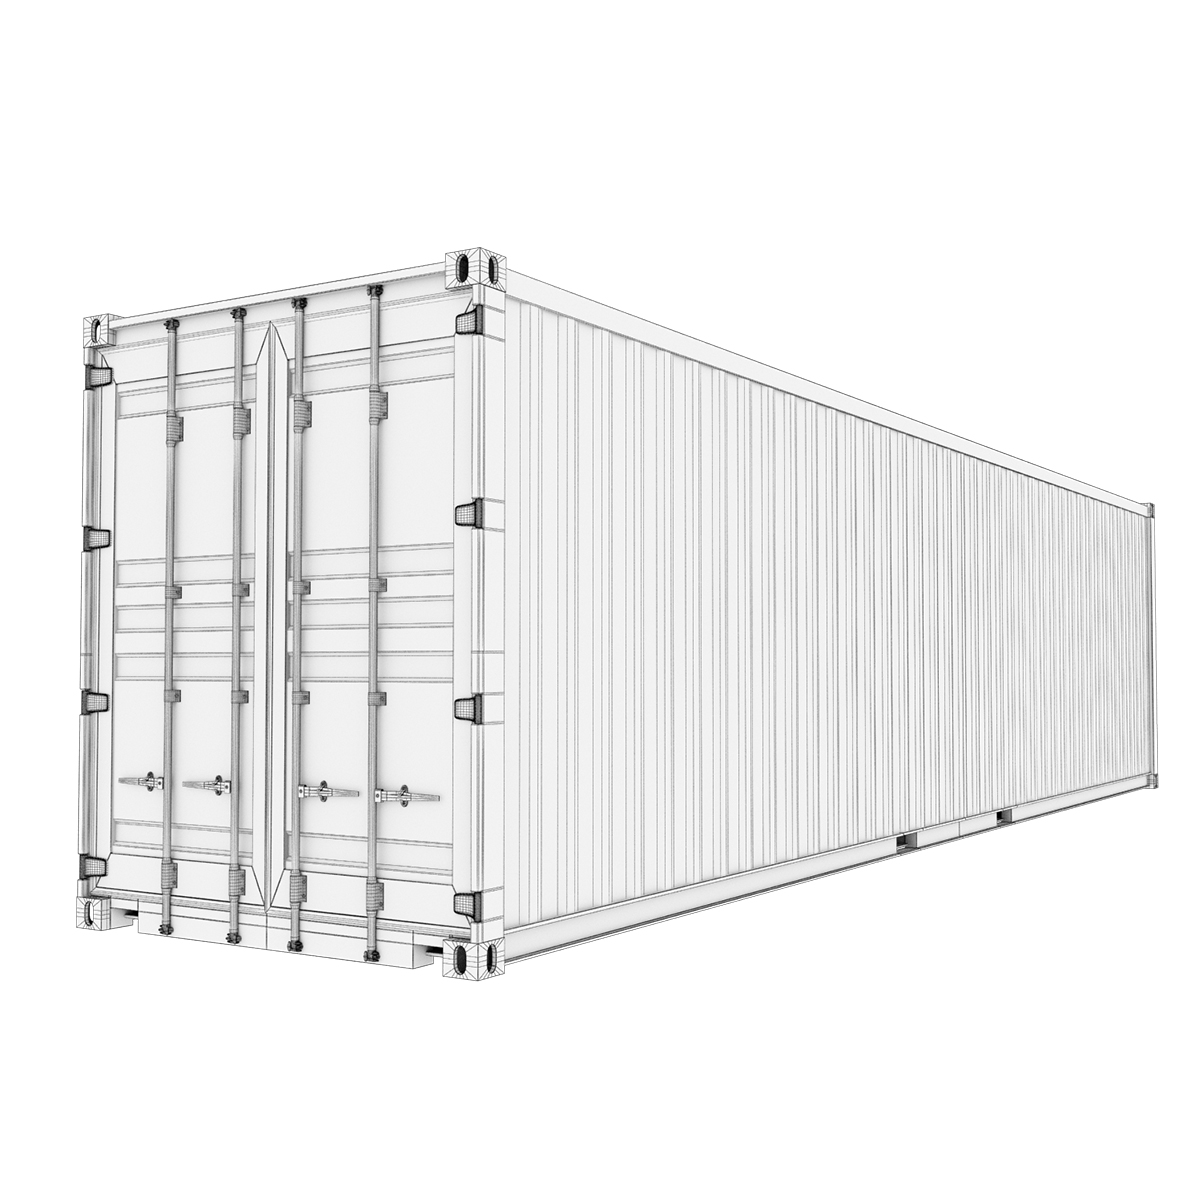 40 feet high cube hapag lloyd shipping container 3d model max fbx ma mb texture obj 278423